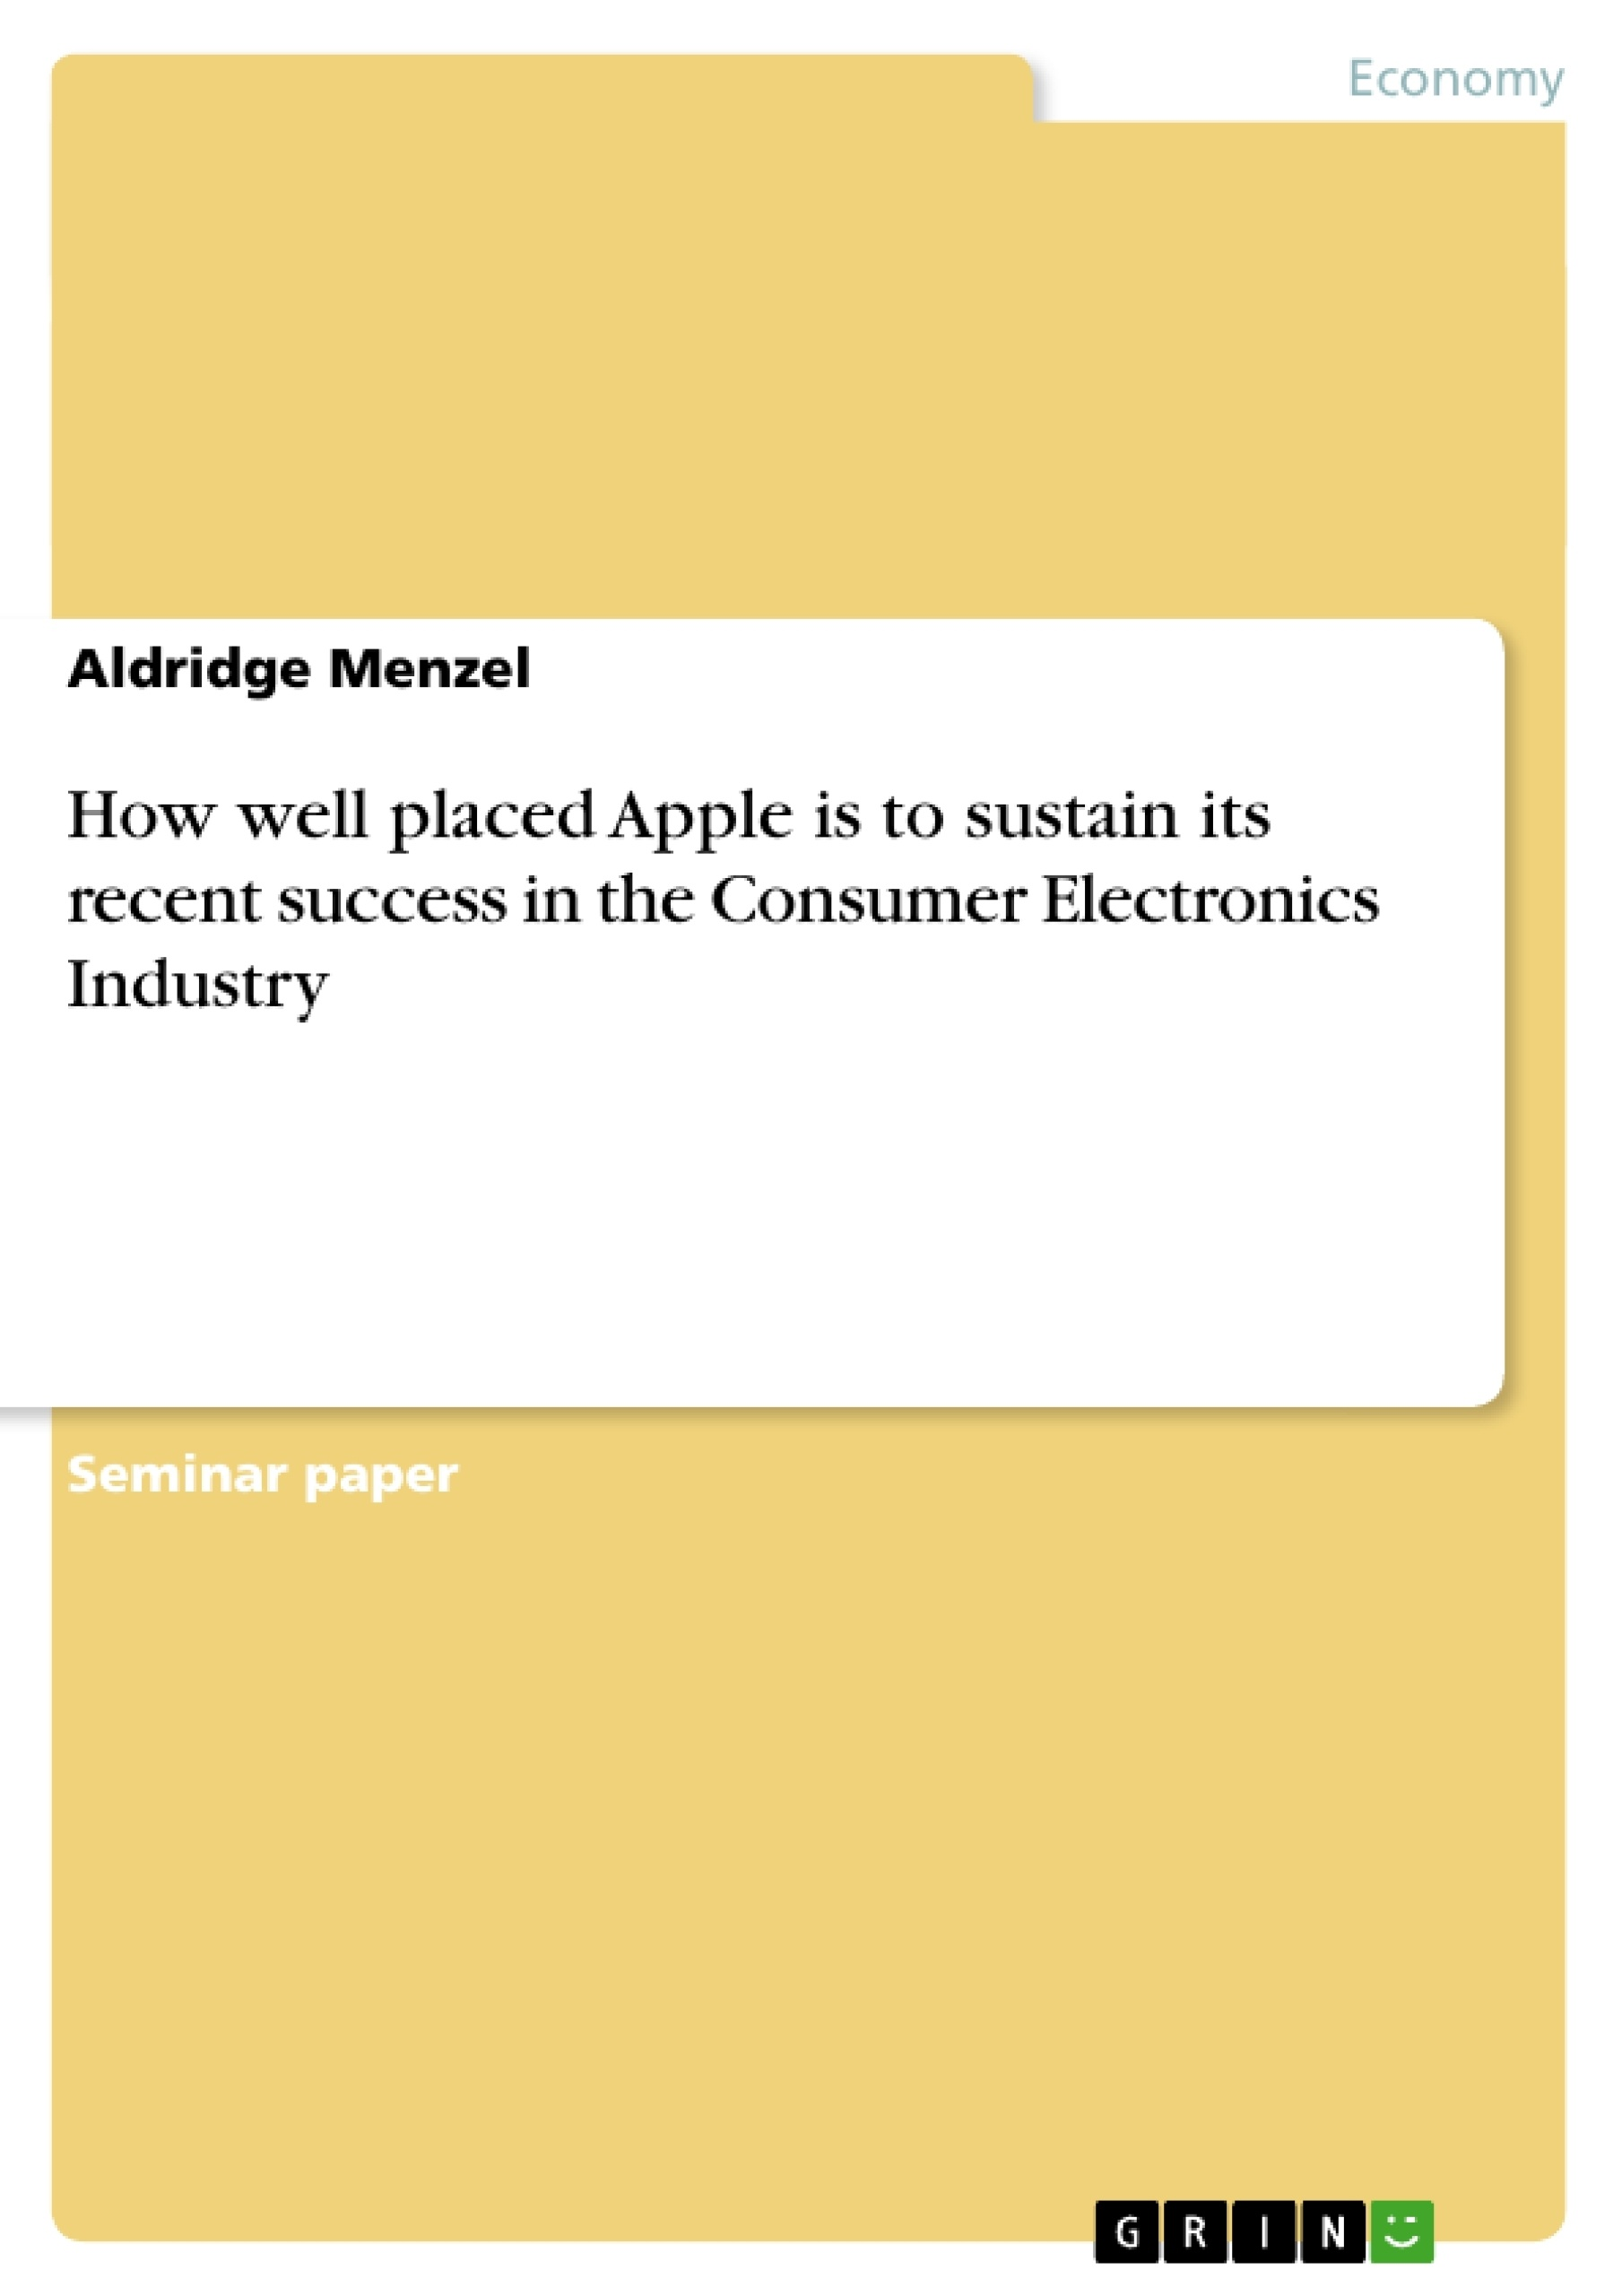 Title: How well placed Apple is to sustain its recent success in the Consumer Electronics Industry